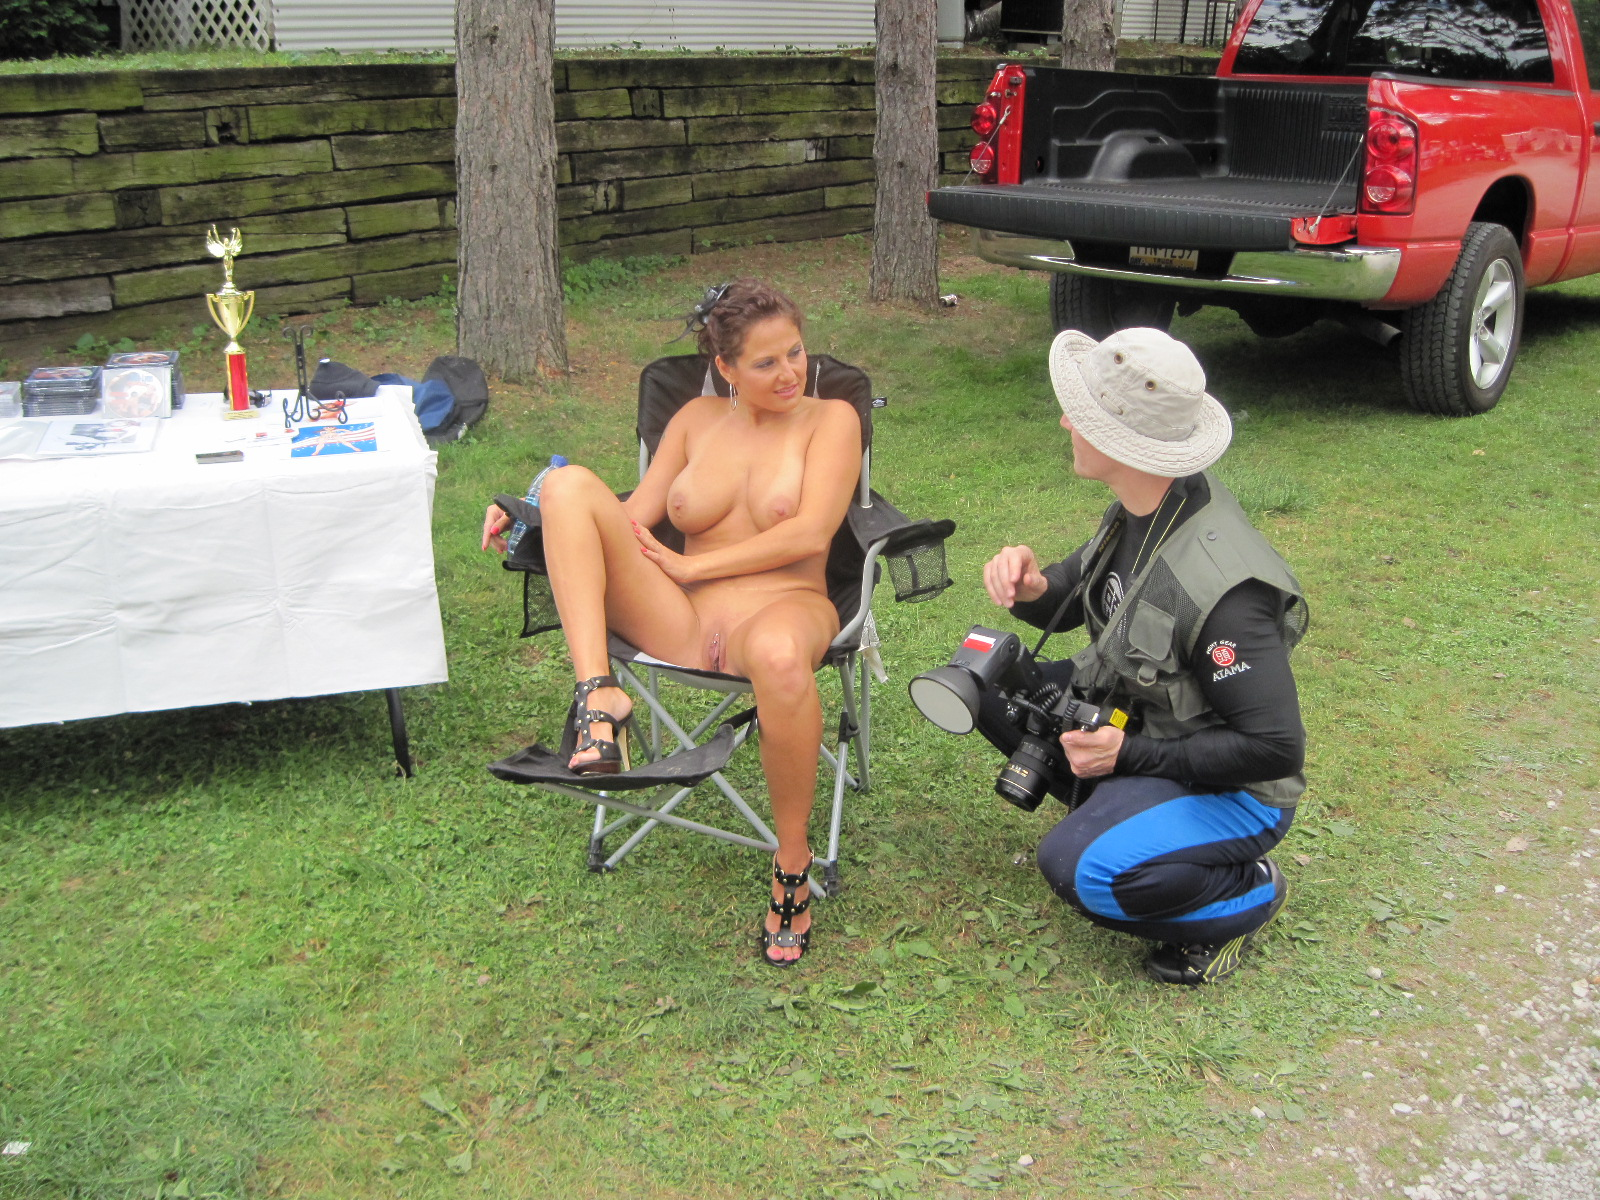 Description Nude Woman Sitting In A Camping Chair